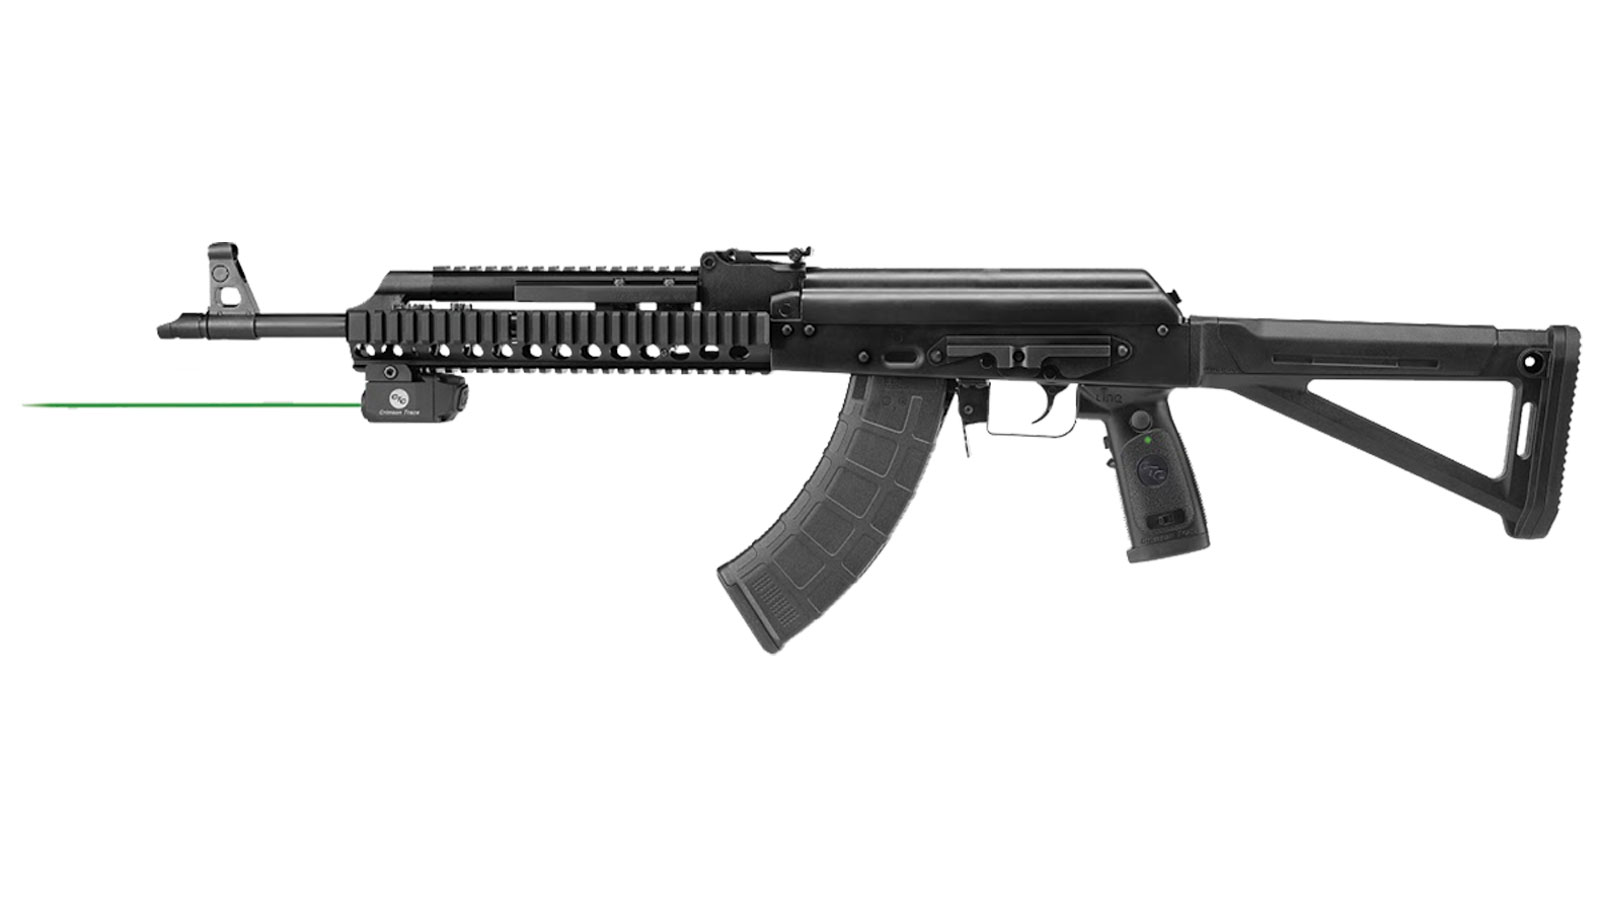 Crimson Trace LNQ103G LiNQ Wireless Green Laser AK Type Rifles